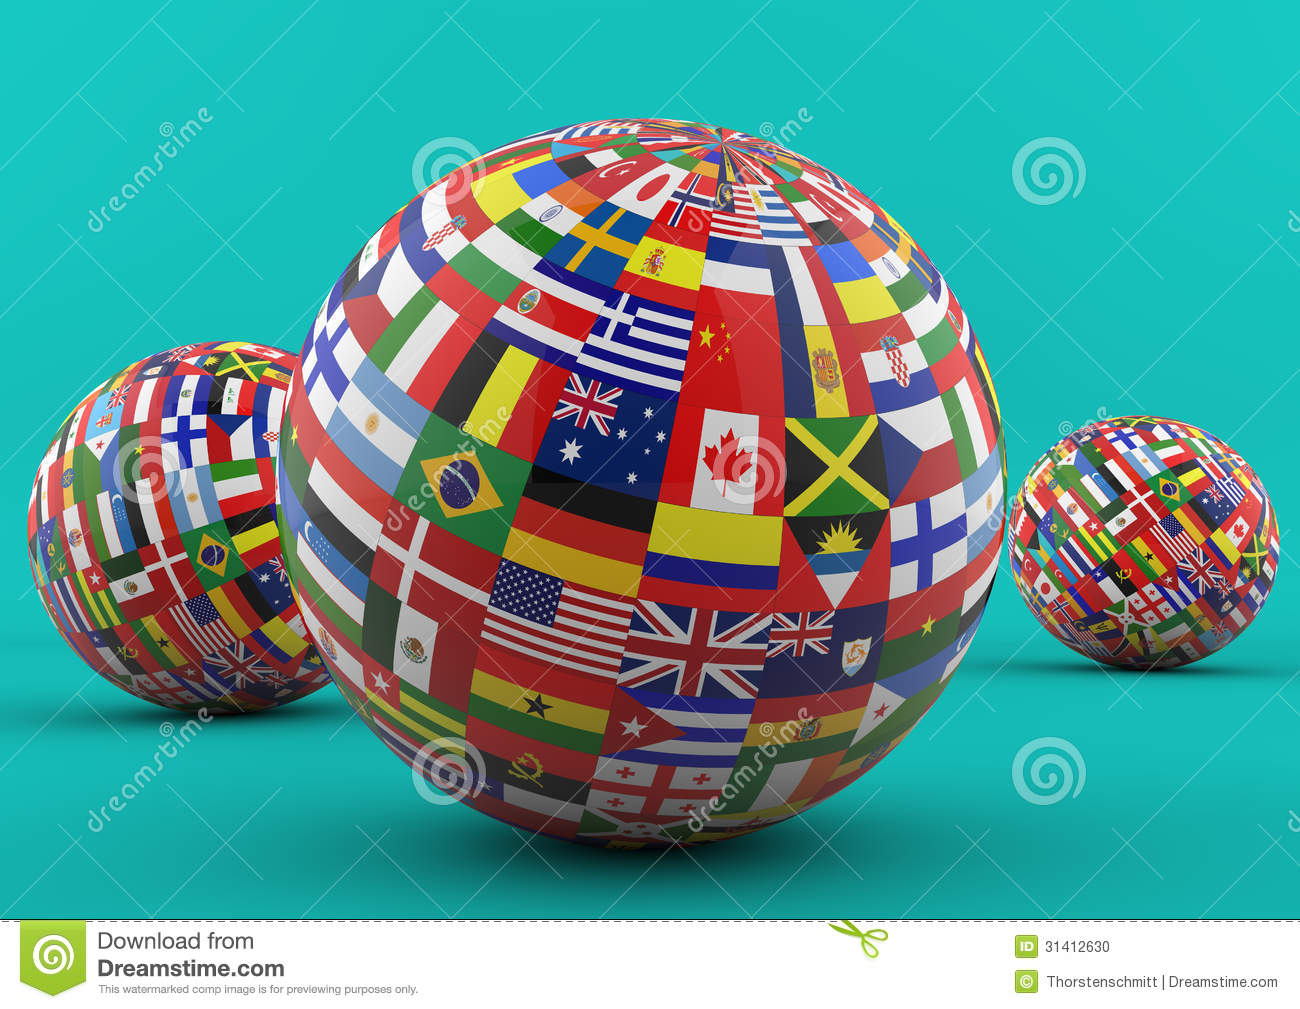 Flag Globe With Different Country Flags Stock Photo - Image: 31412630